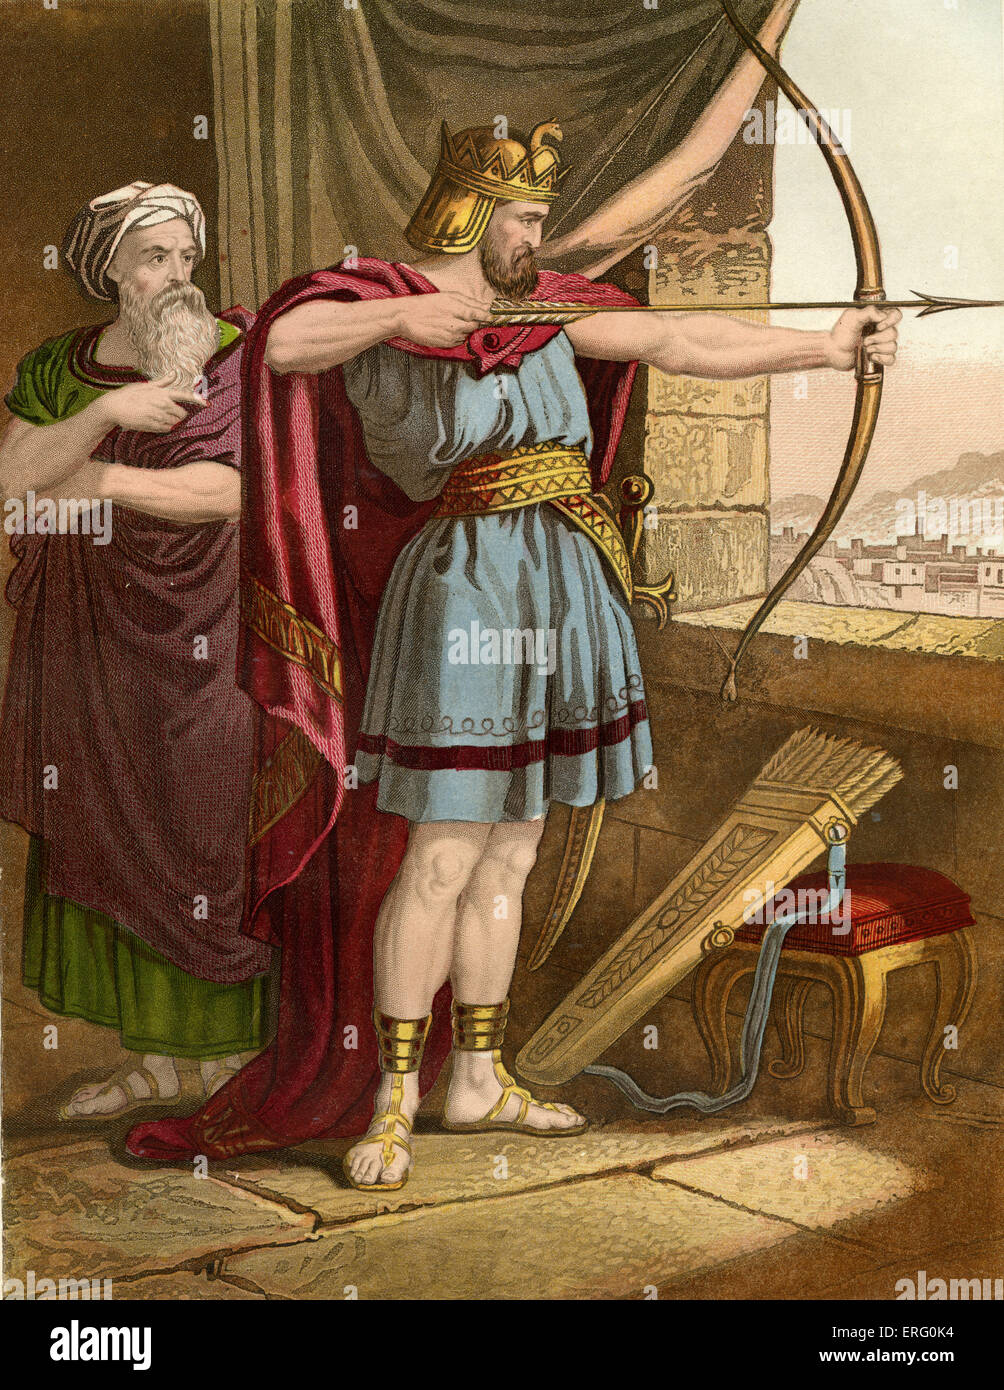 Joash (King of Israel) shooting arrows at the command of the